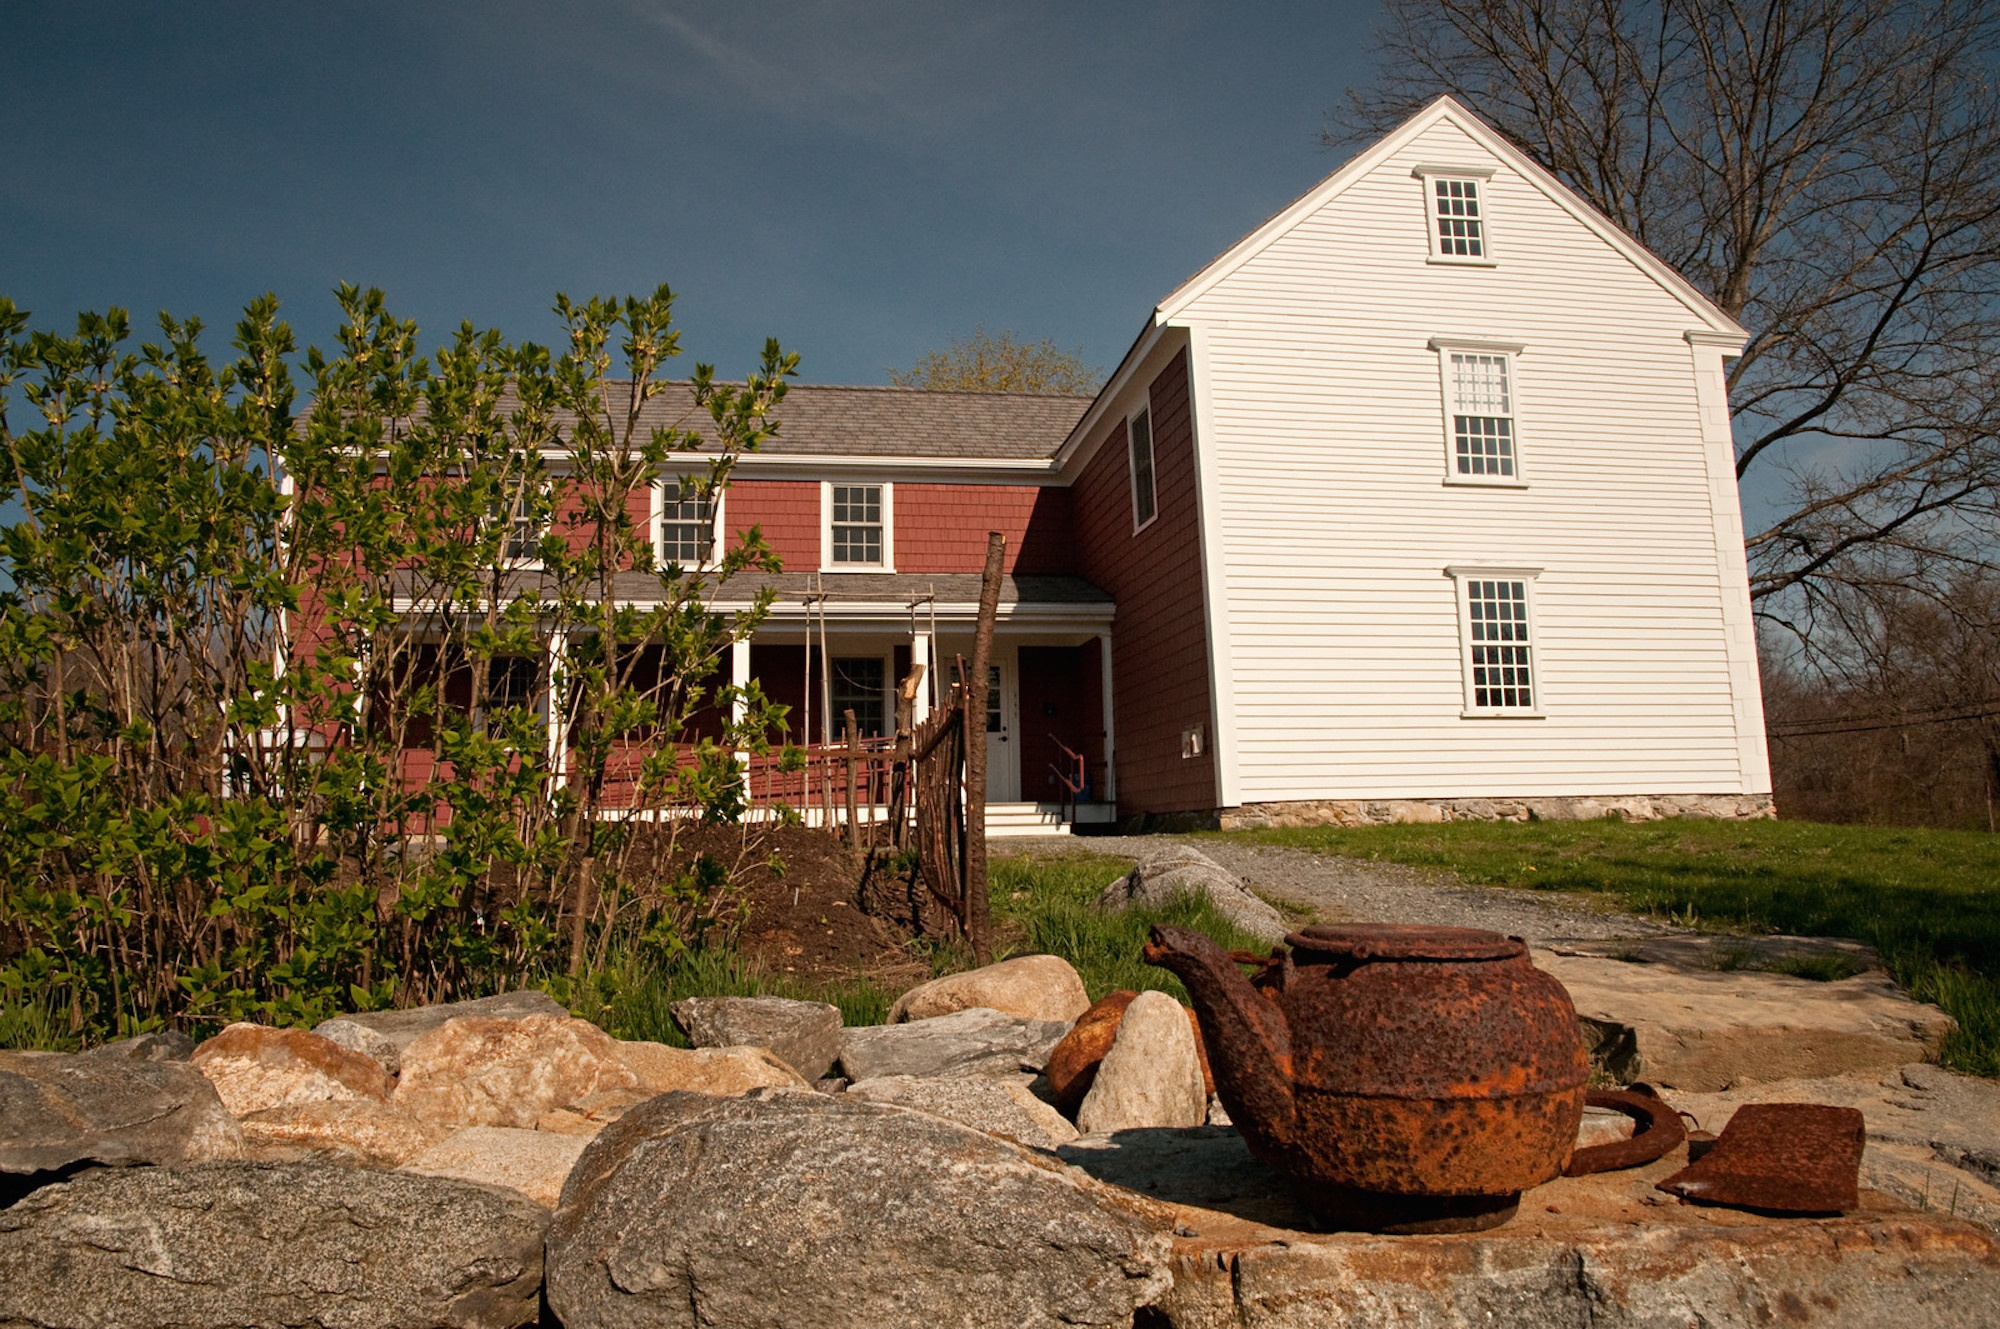 Thoreau Farm exterior